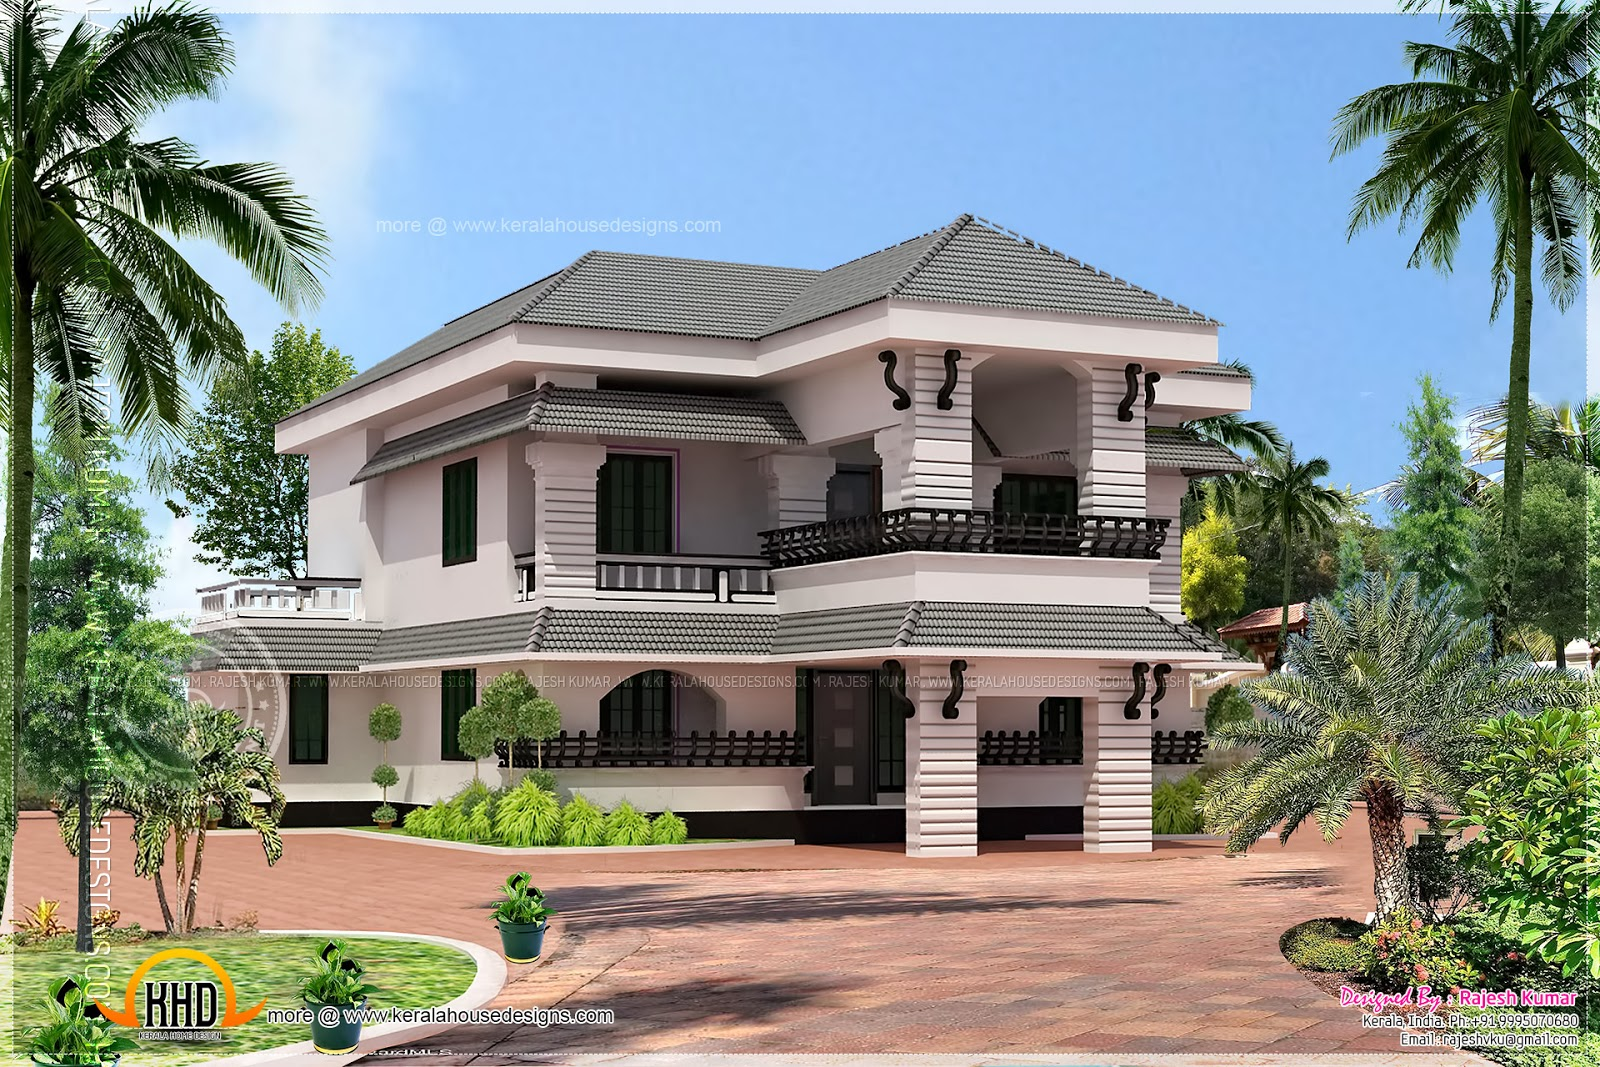 Malabar model home design kerala home design and floor plans for Home by design